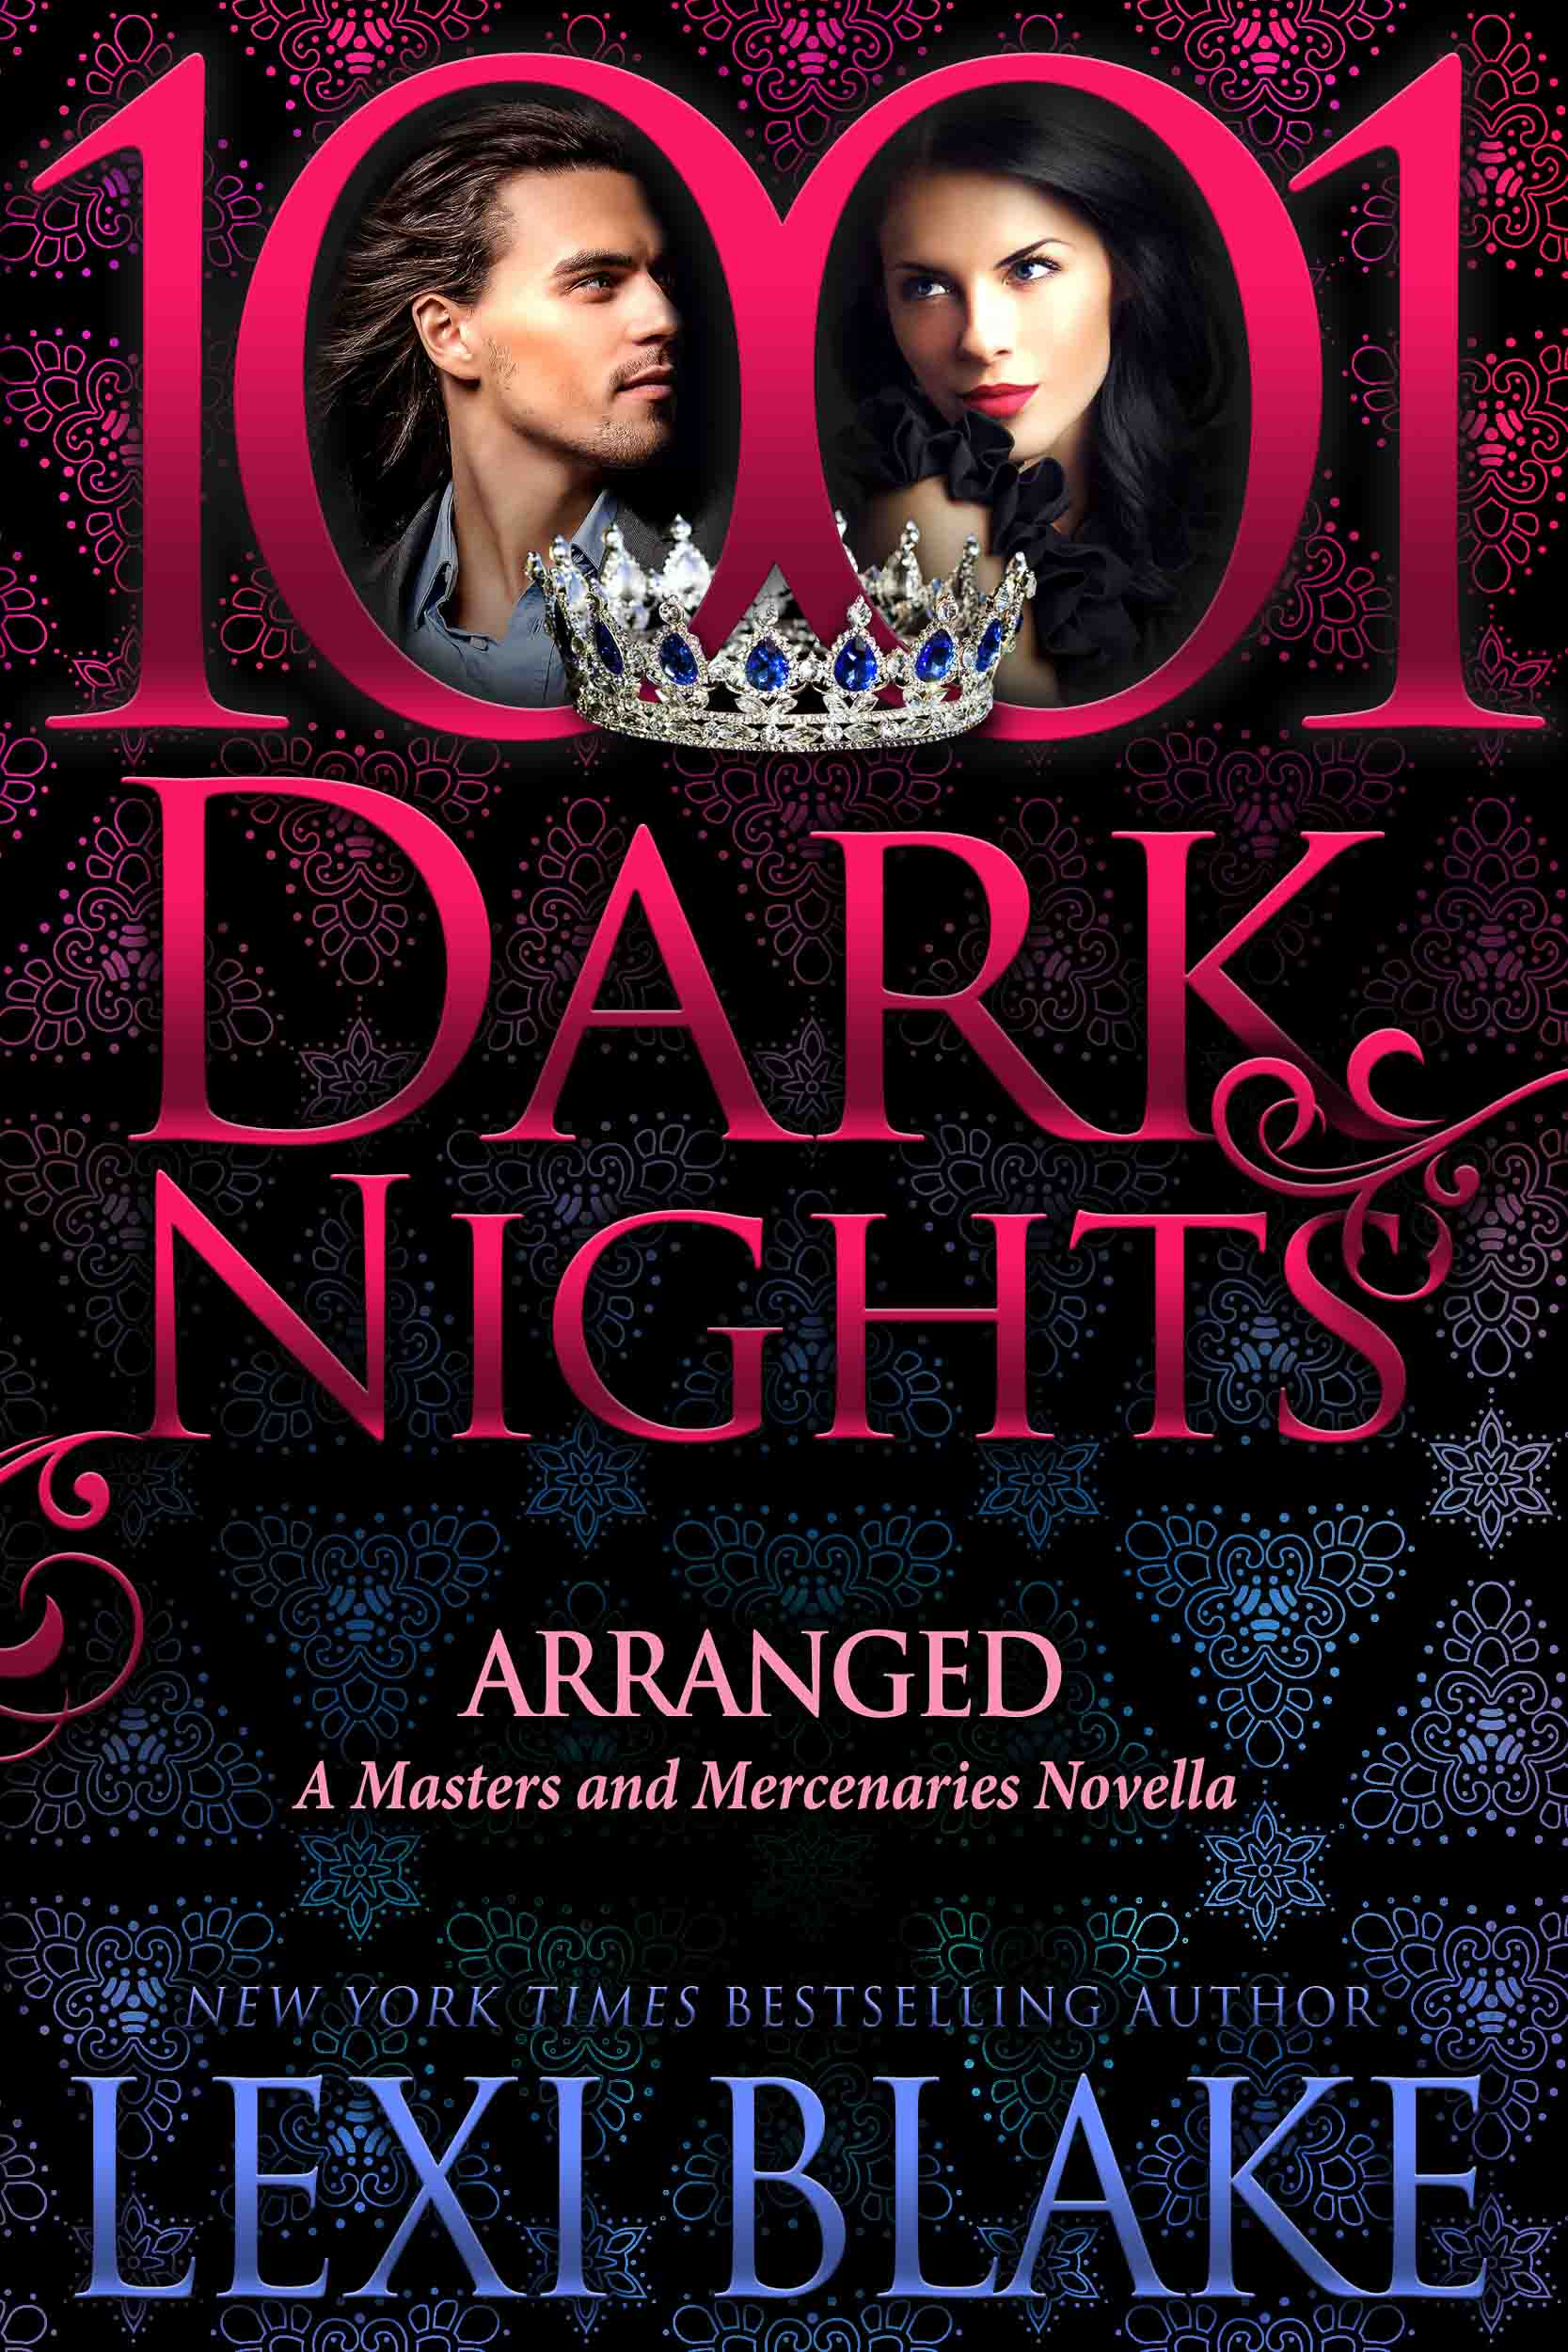 Lexi Blake 1001 Dark Nights Arranged.jpg